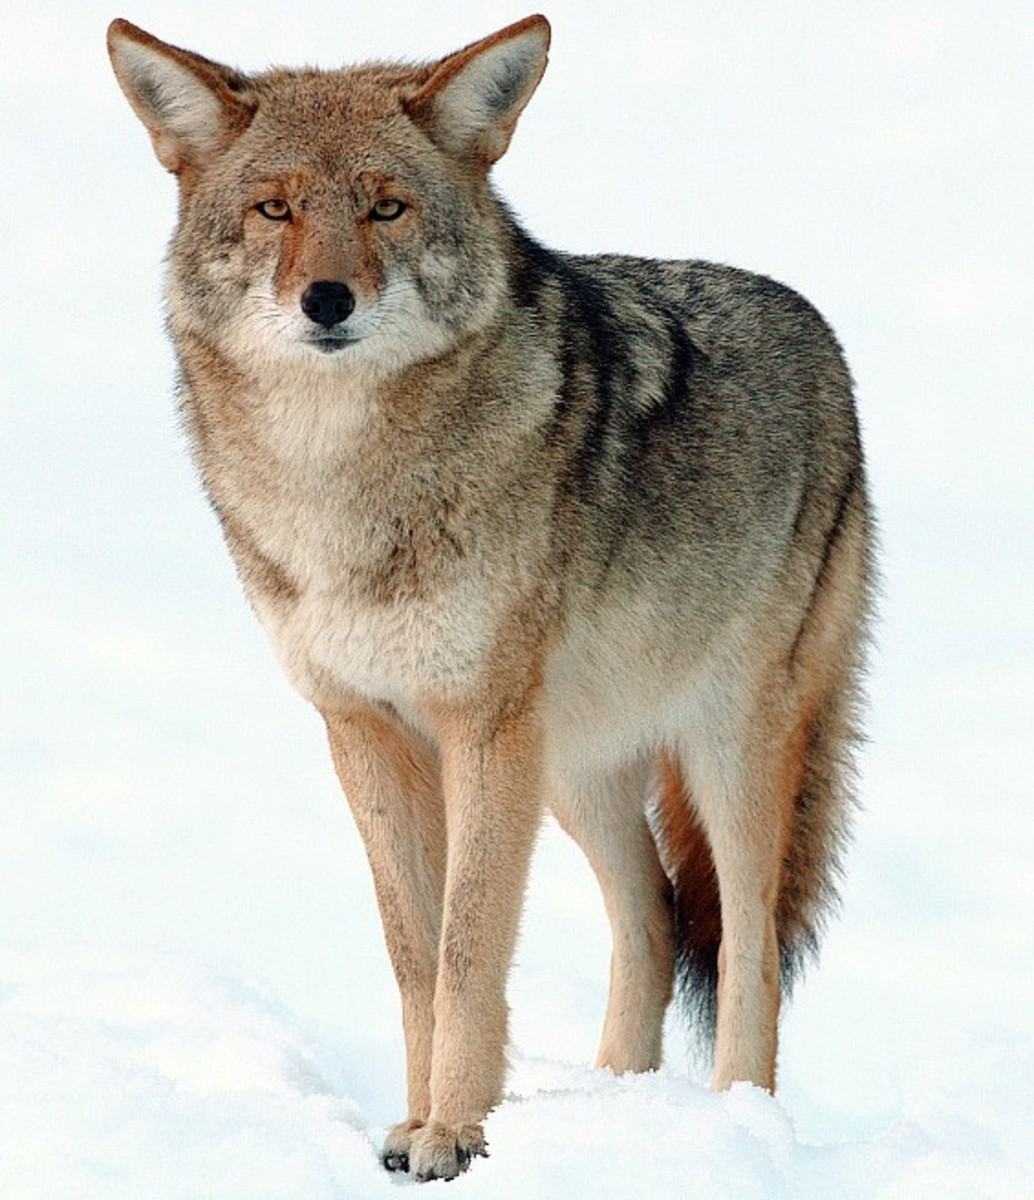 Coyote from Yosemite National Park, California